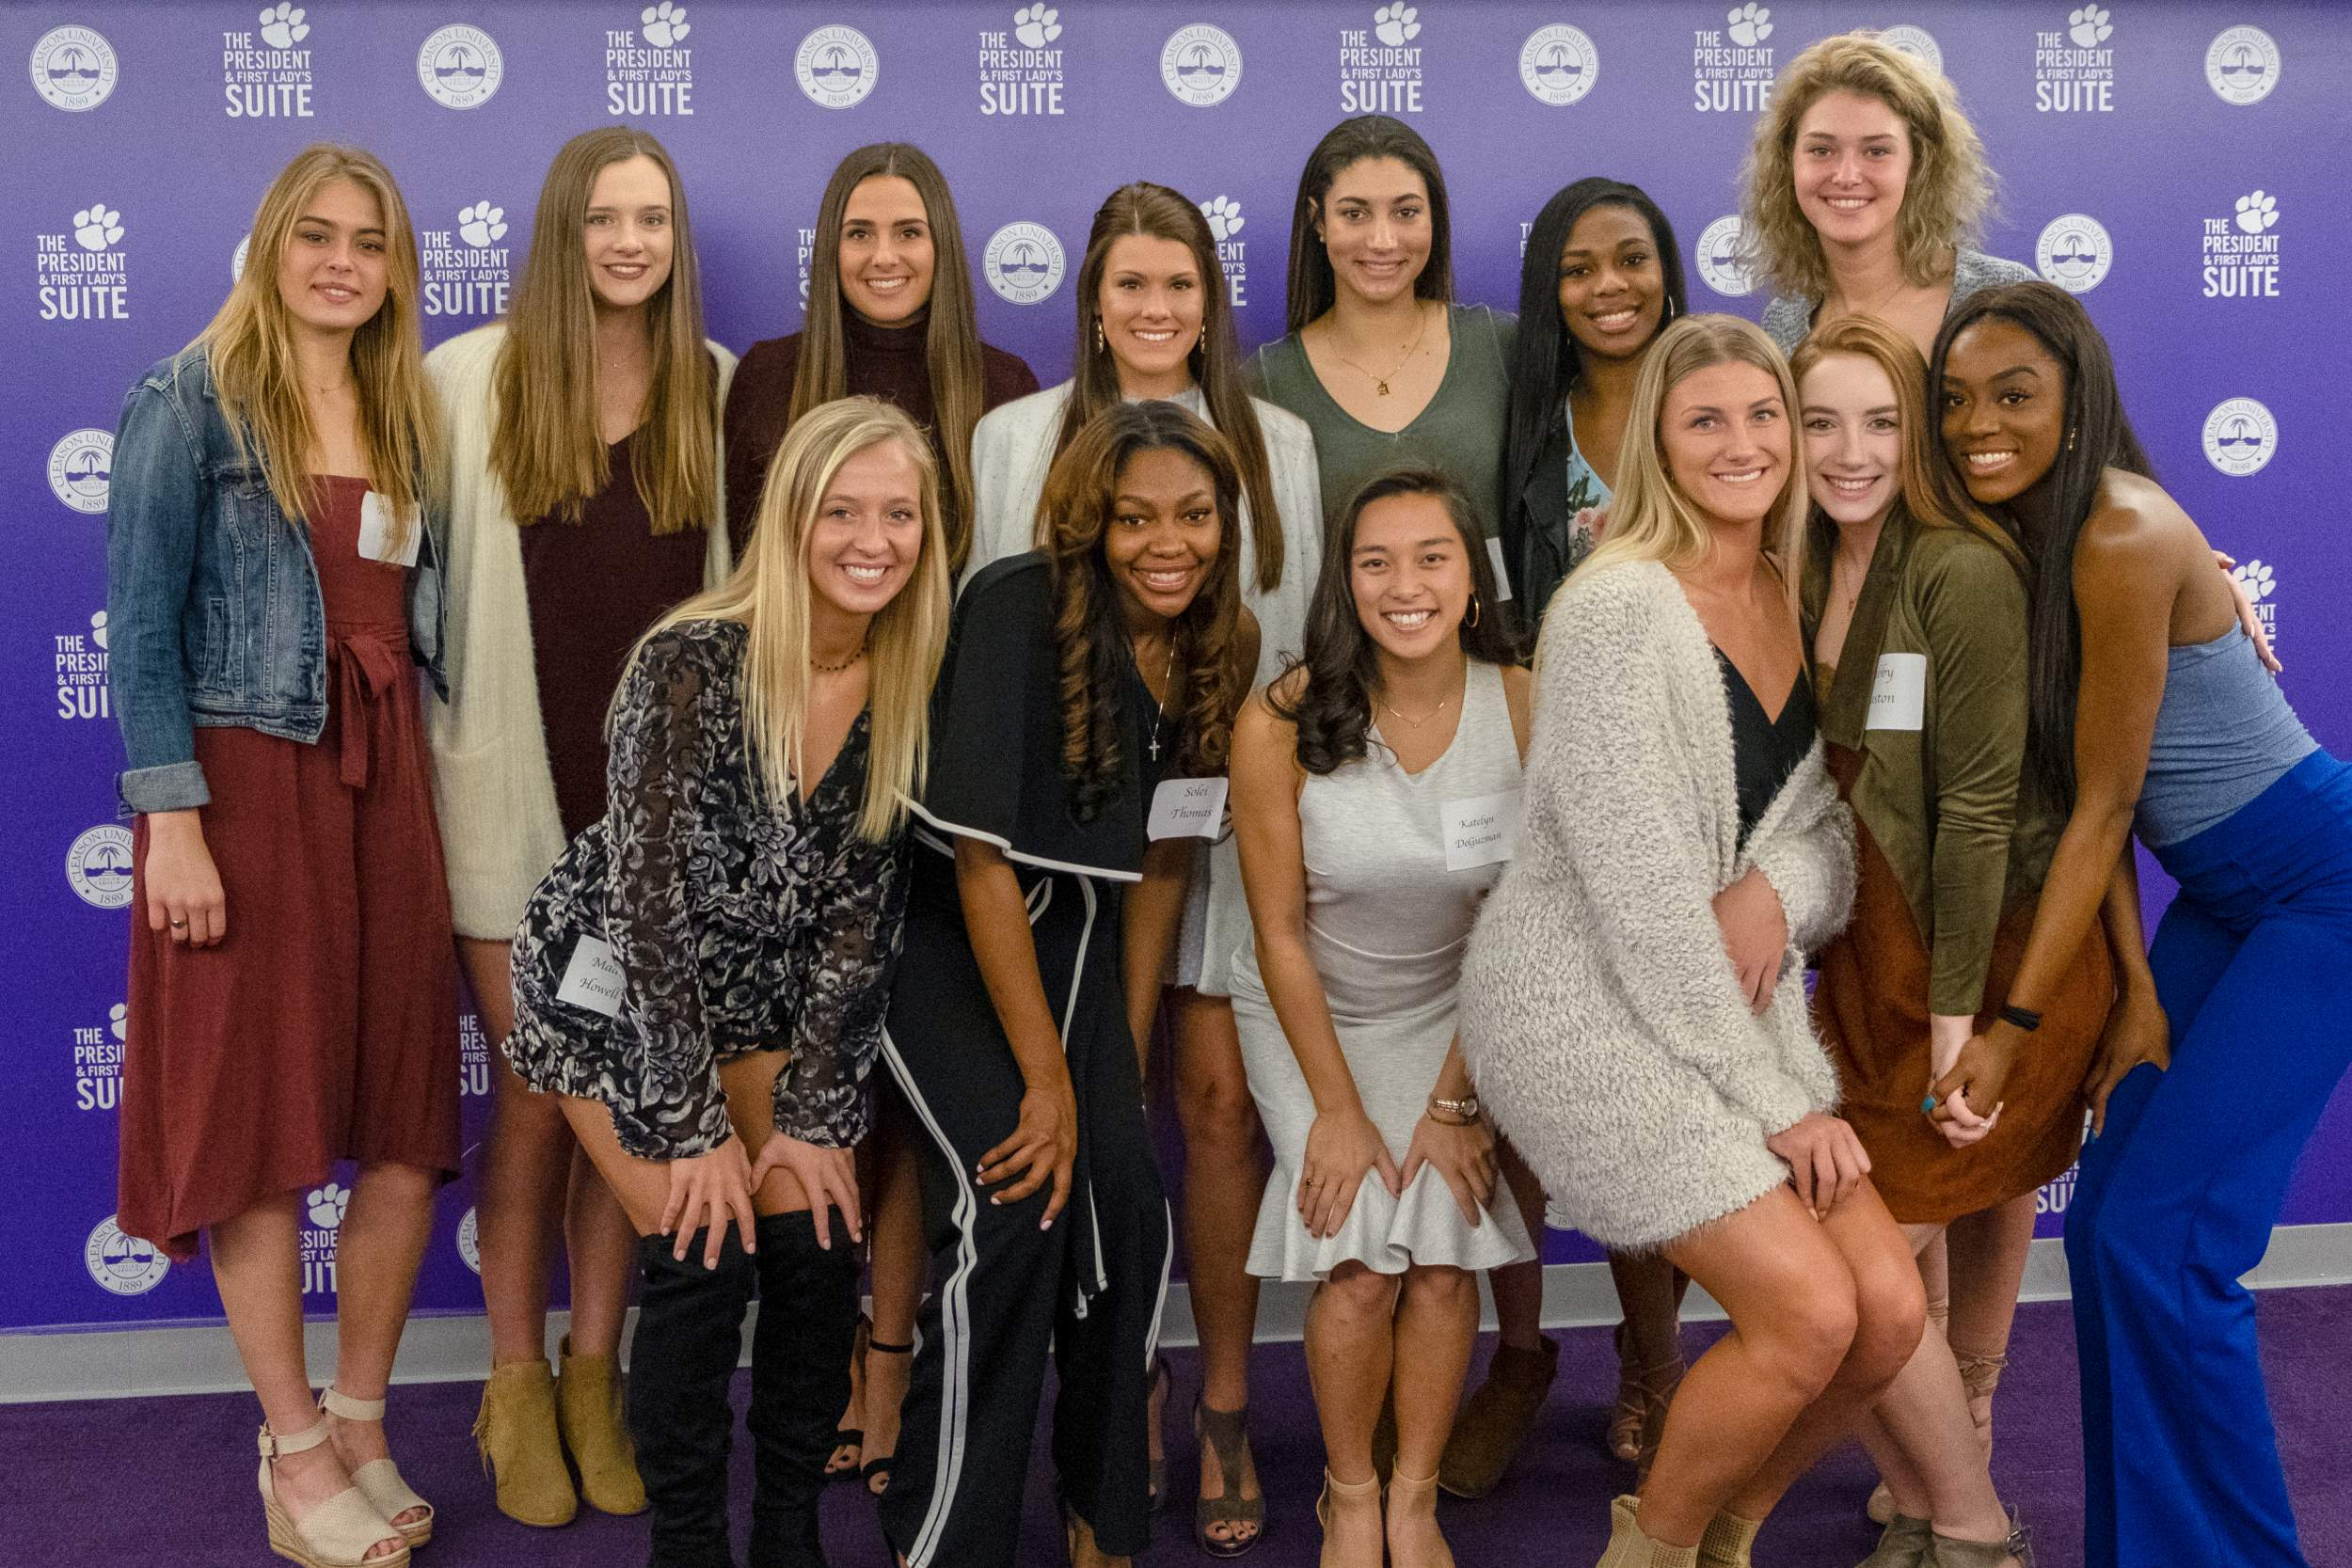 📸 GALLERY: 2019 Volleyball Banquet